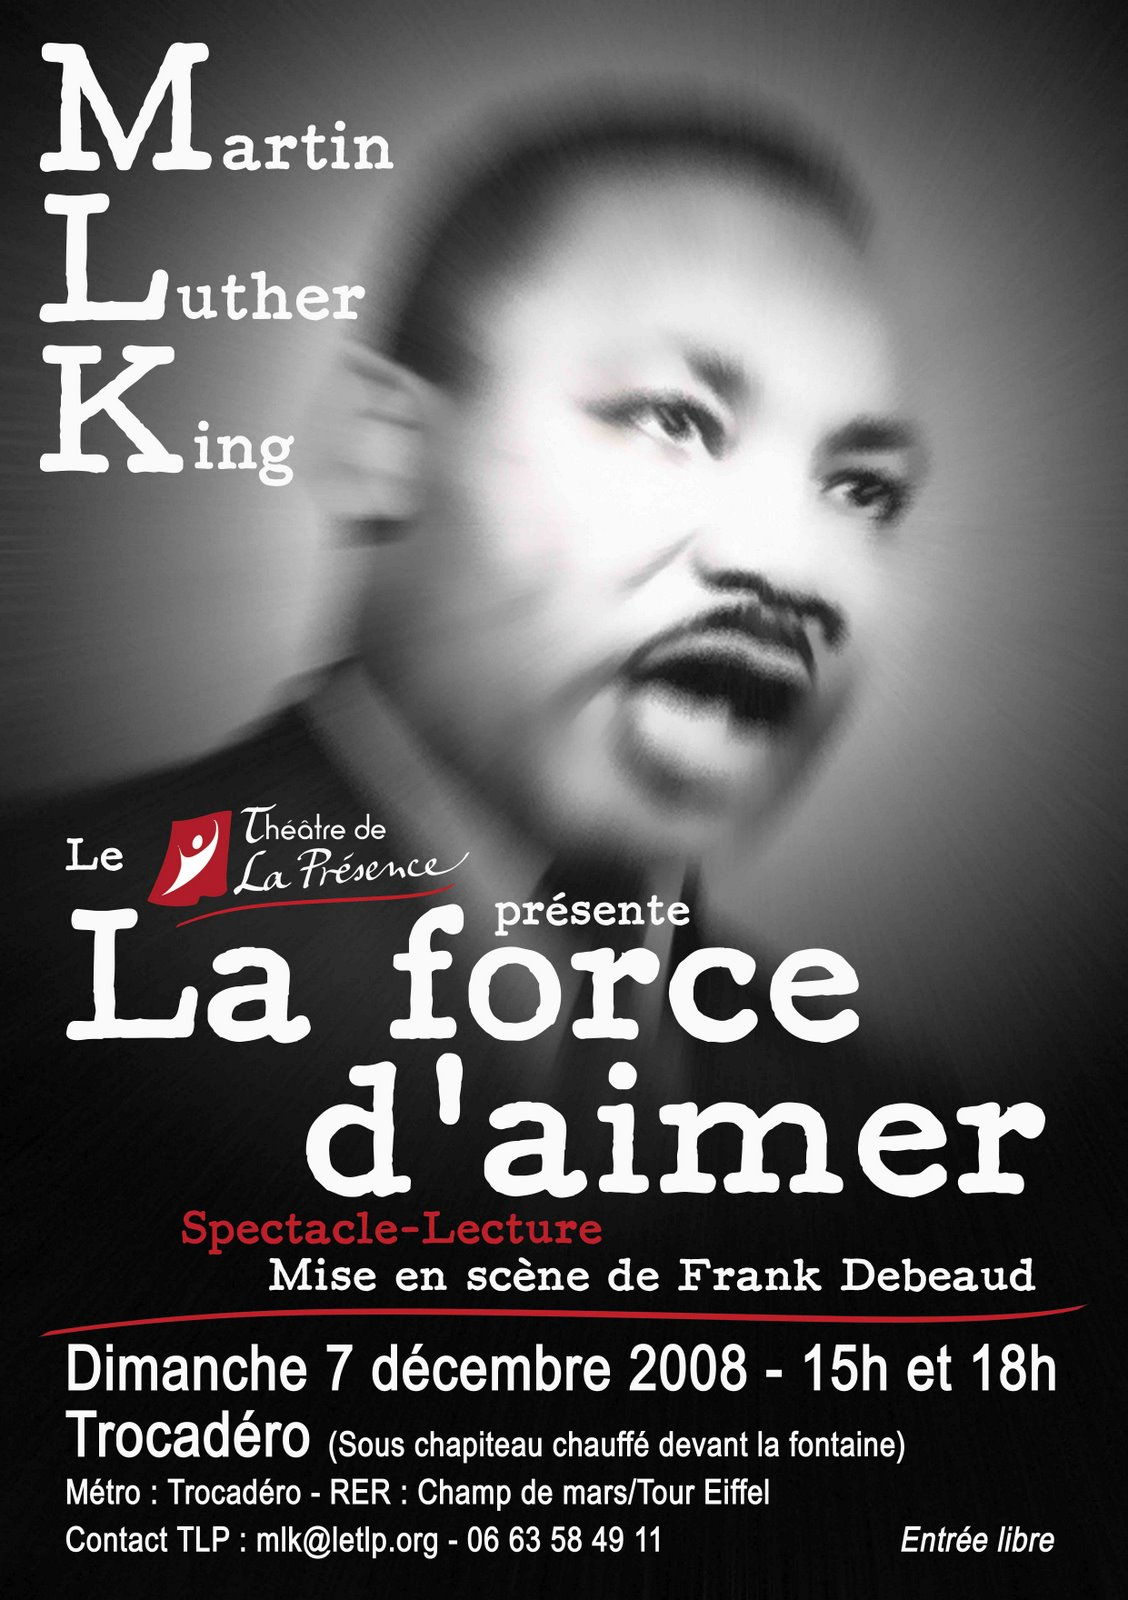 [Affiche+MLK+la+force+d]